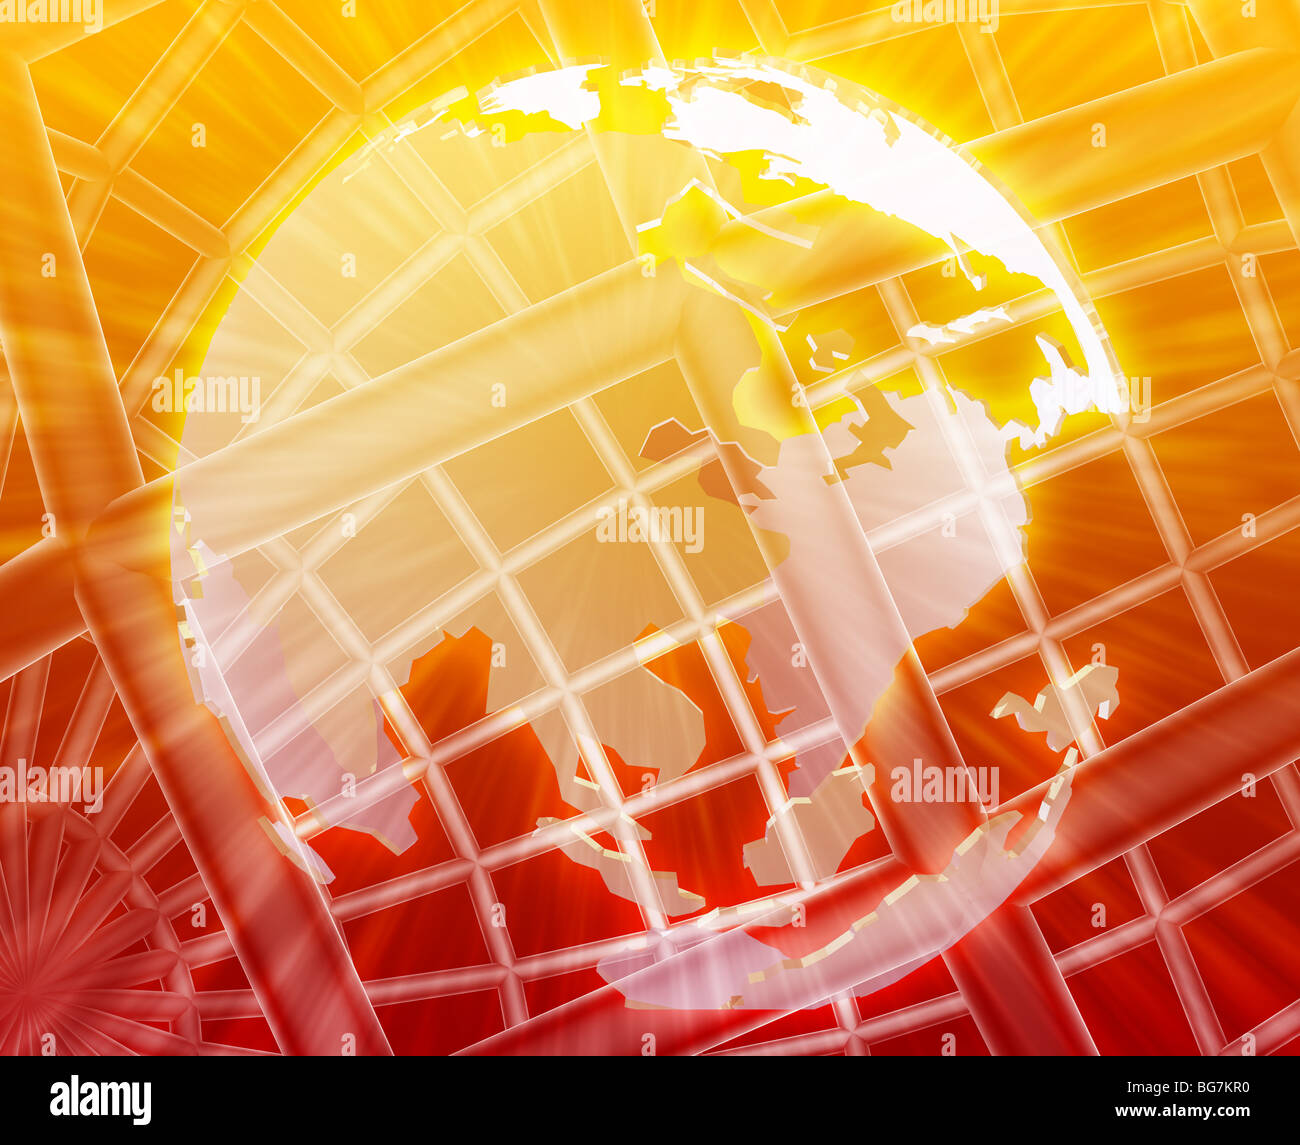 Abstract globe grid wireframe asia world map illustration stock abstract globe grid wireframe asia world map illustration gumiabroncs Images